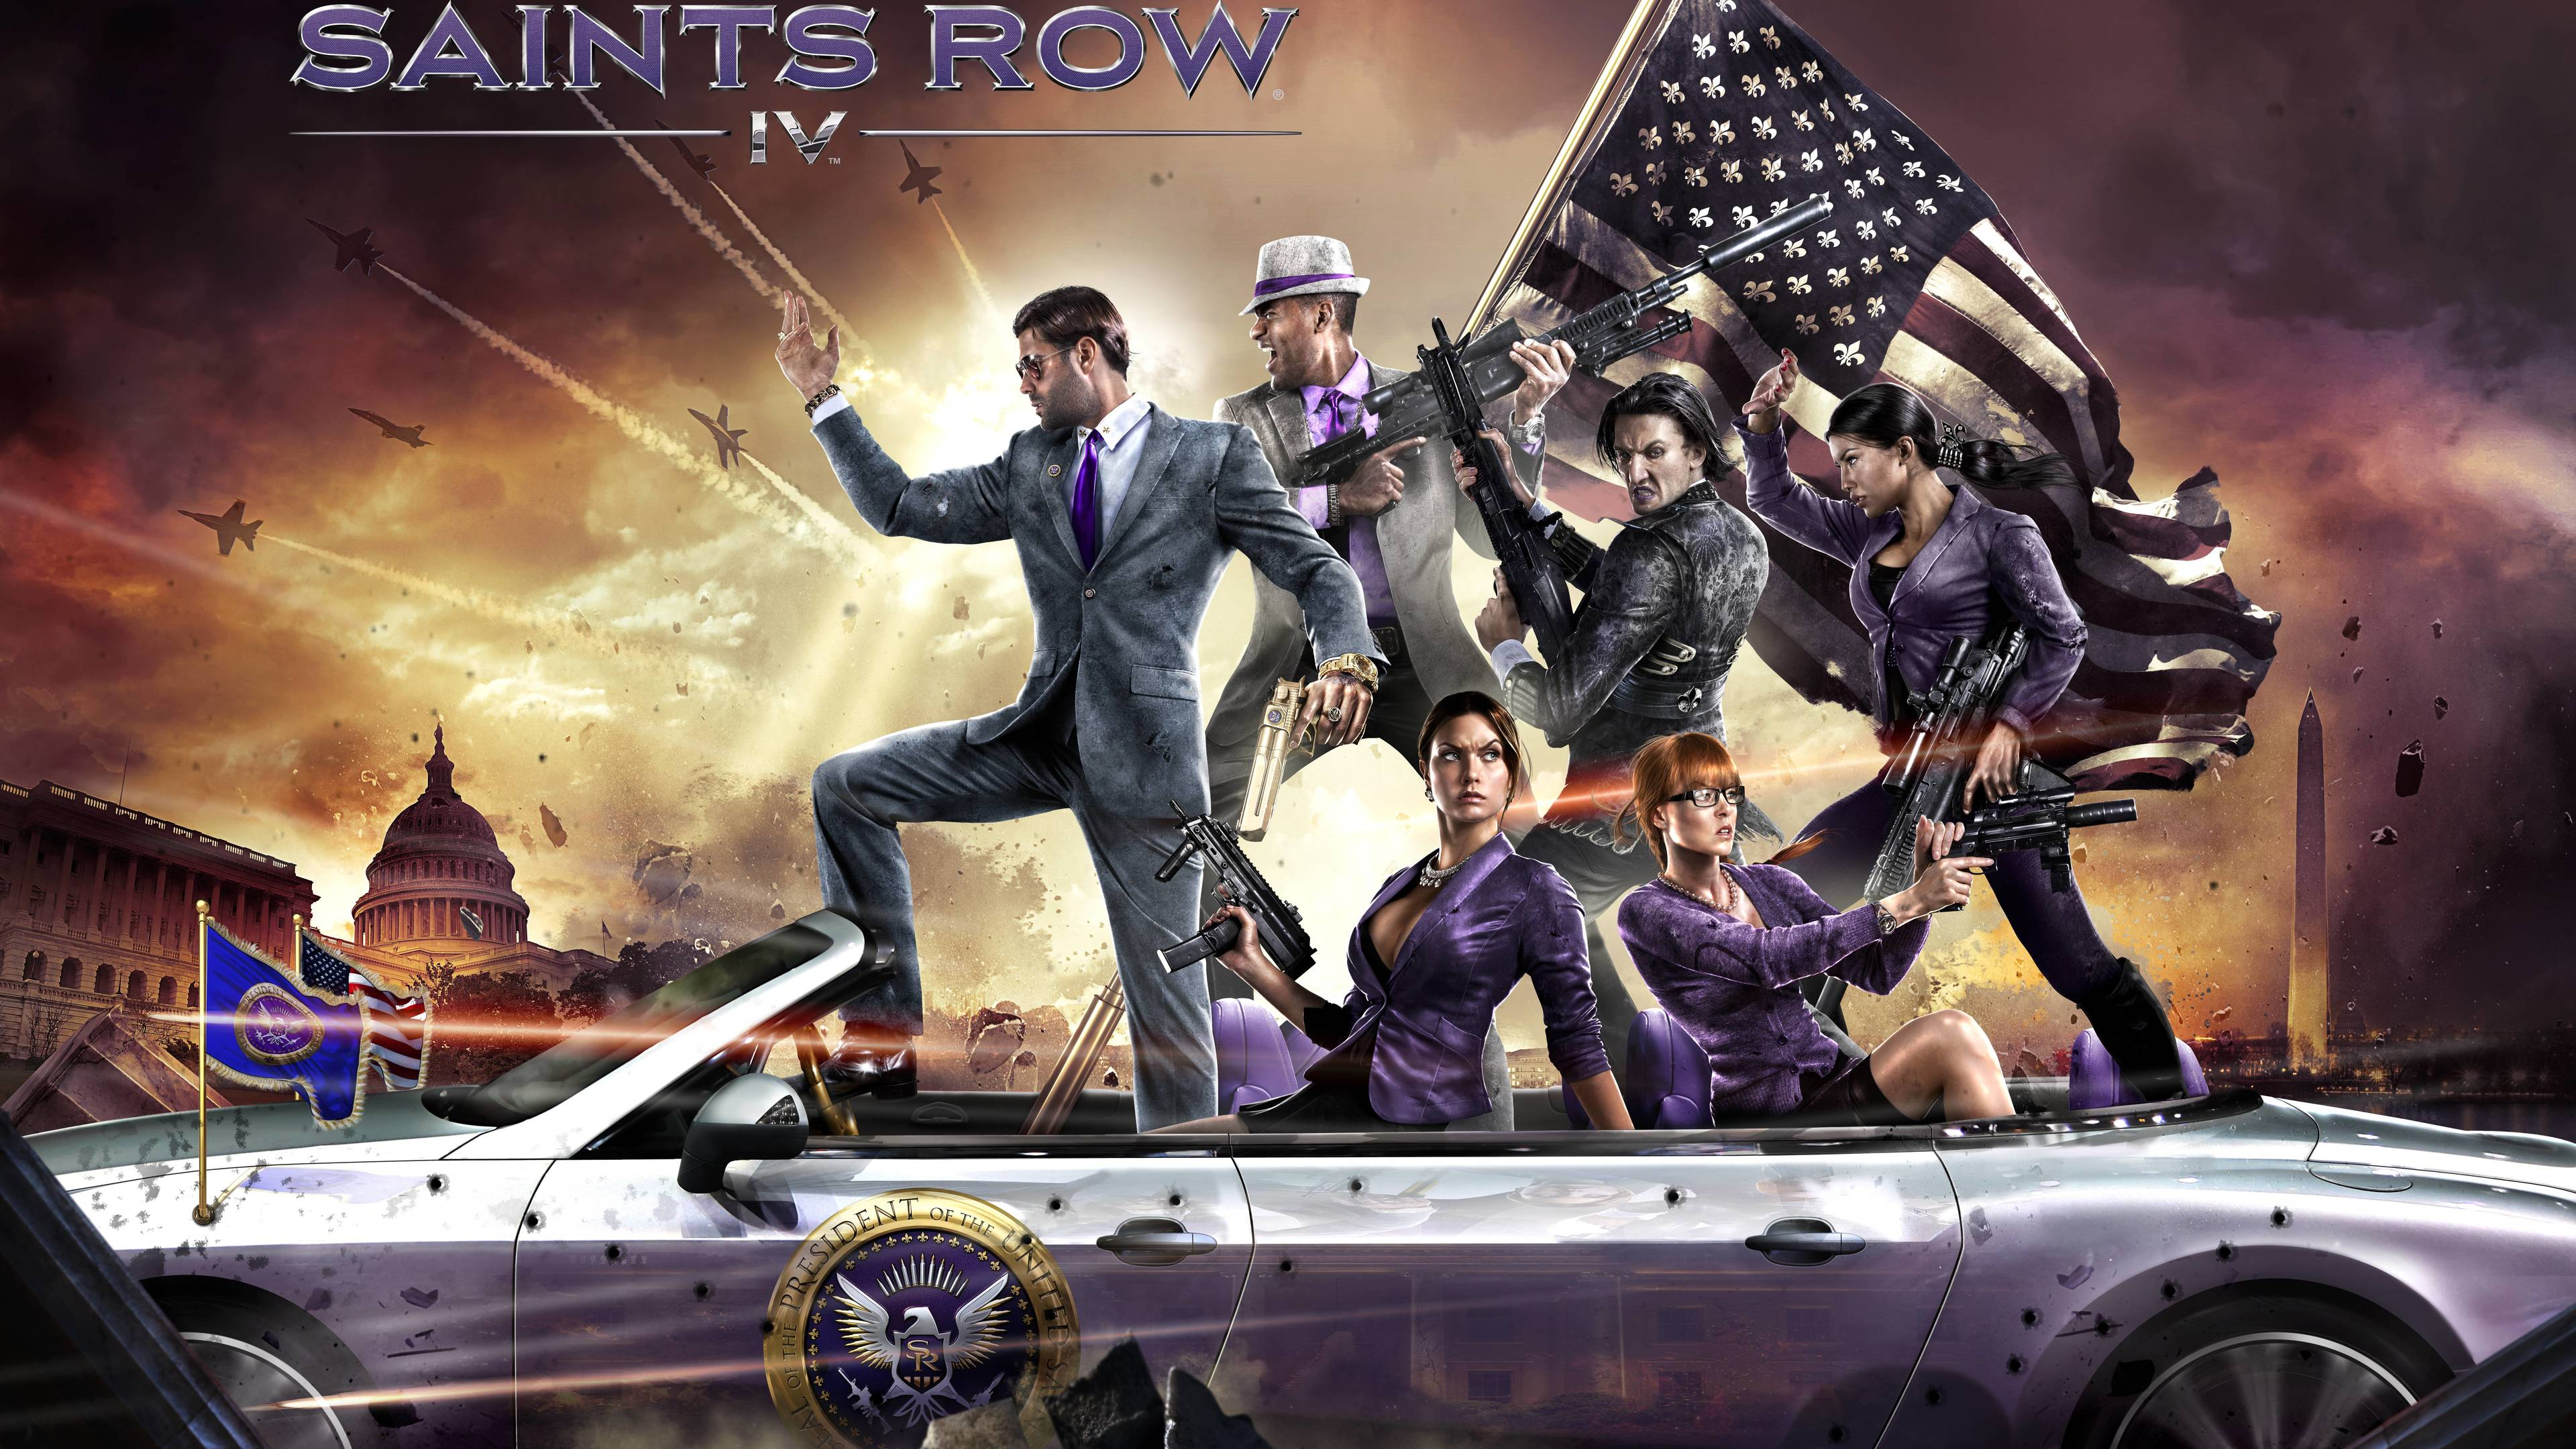 saints row 4 10k 1540982554 - Saints Row 4 10k - hd-wallpapers, games wallpapers, 8k wallpapers, 5k wallpapers, 4k-wallpapers, 10k wallpapers